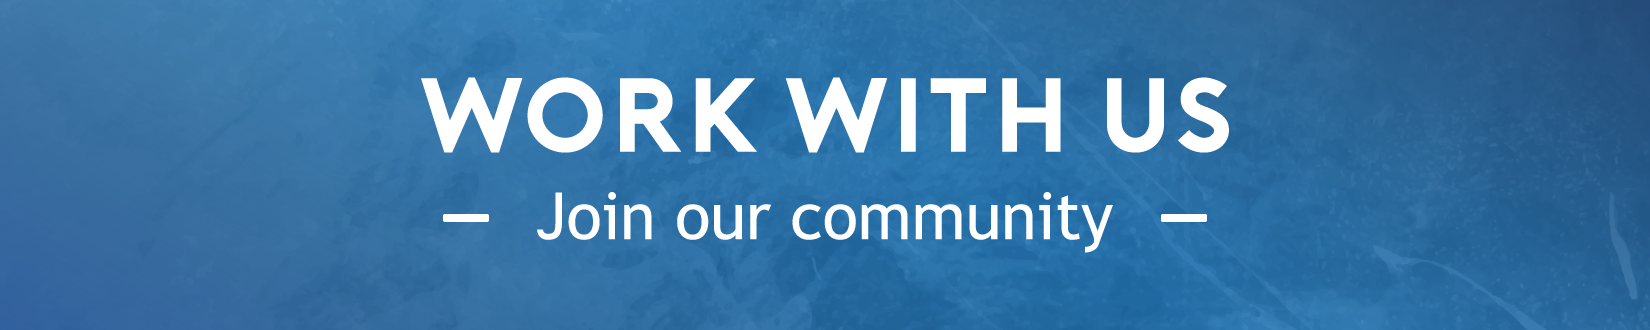 Join our community at Hawk and Peddle